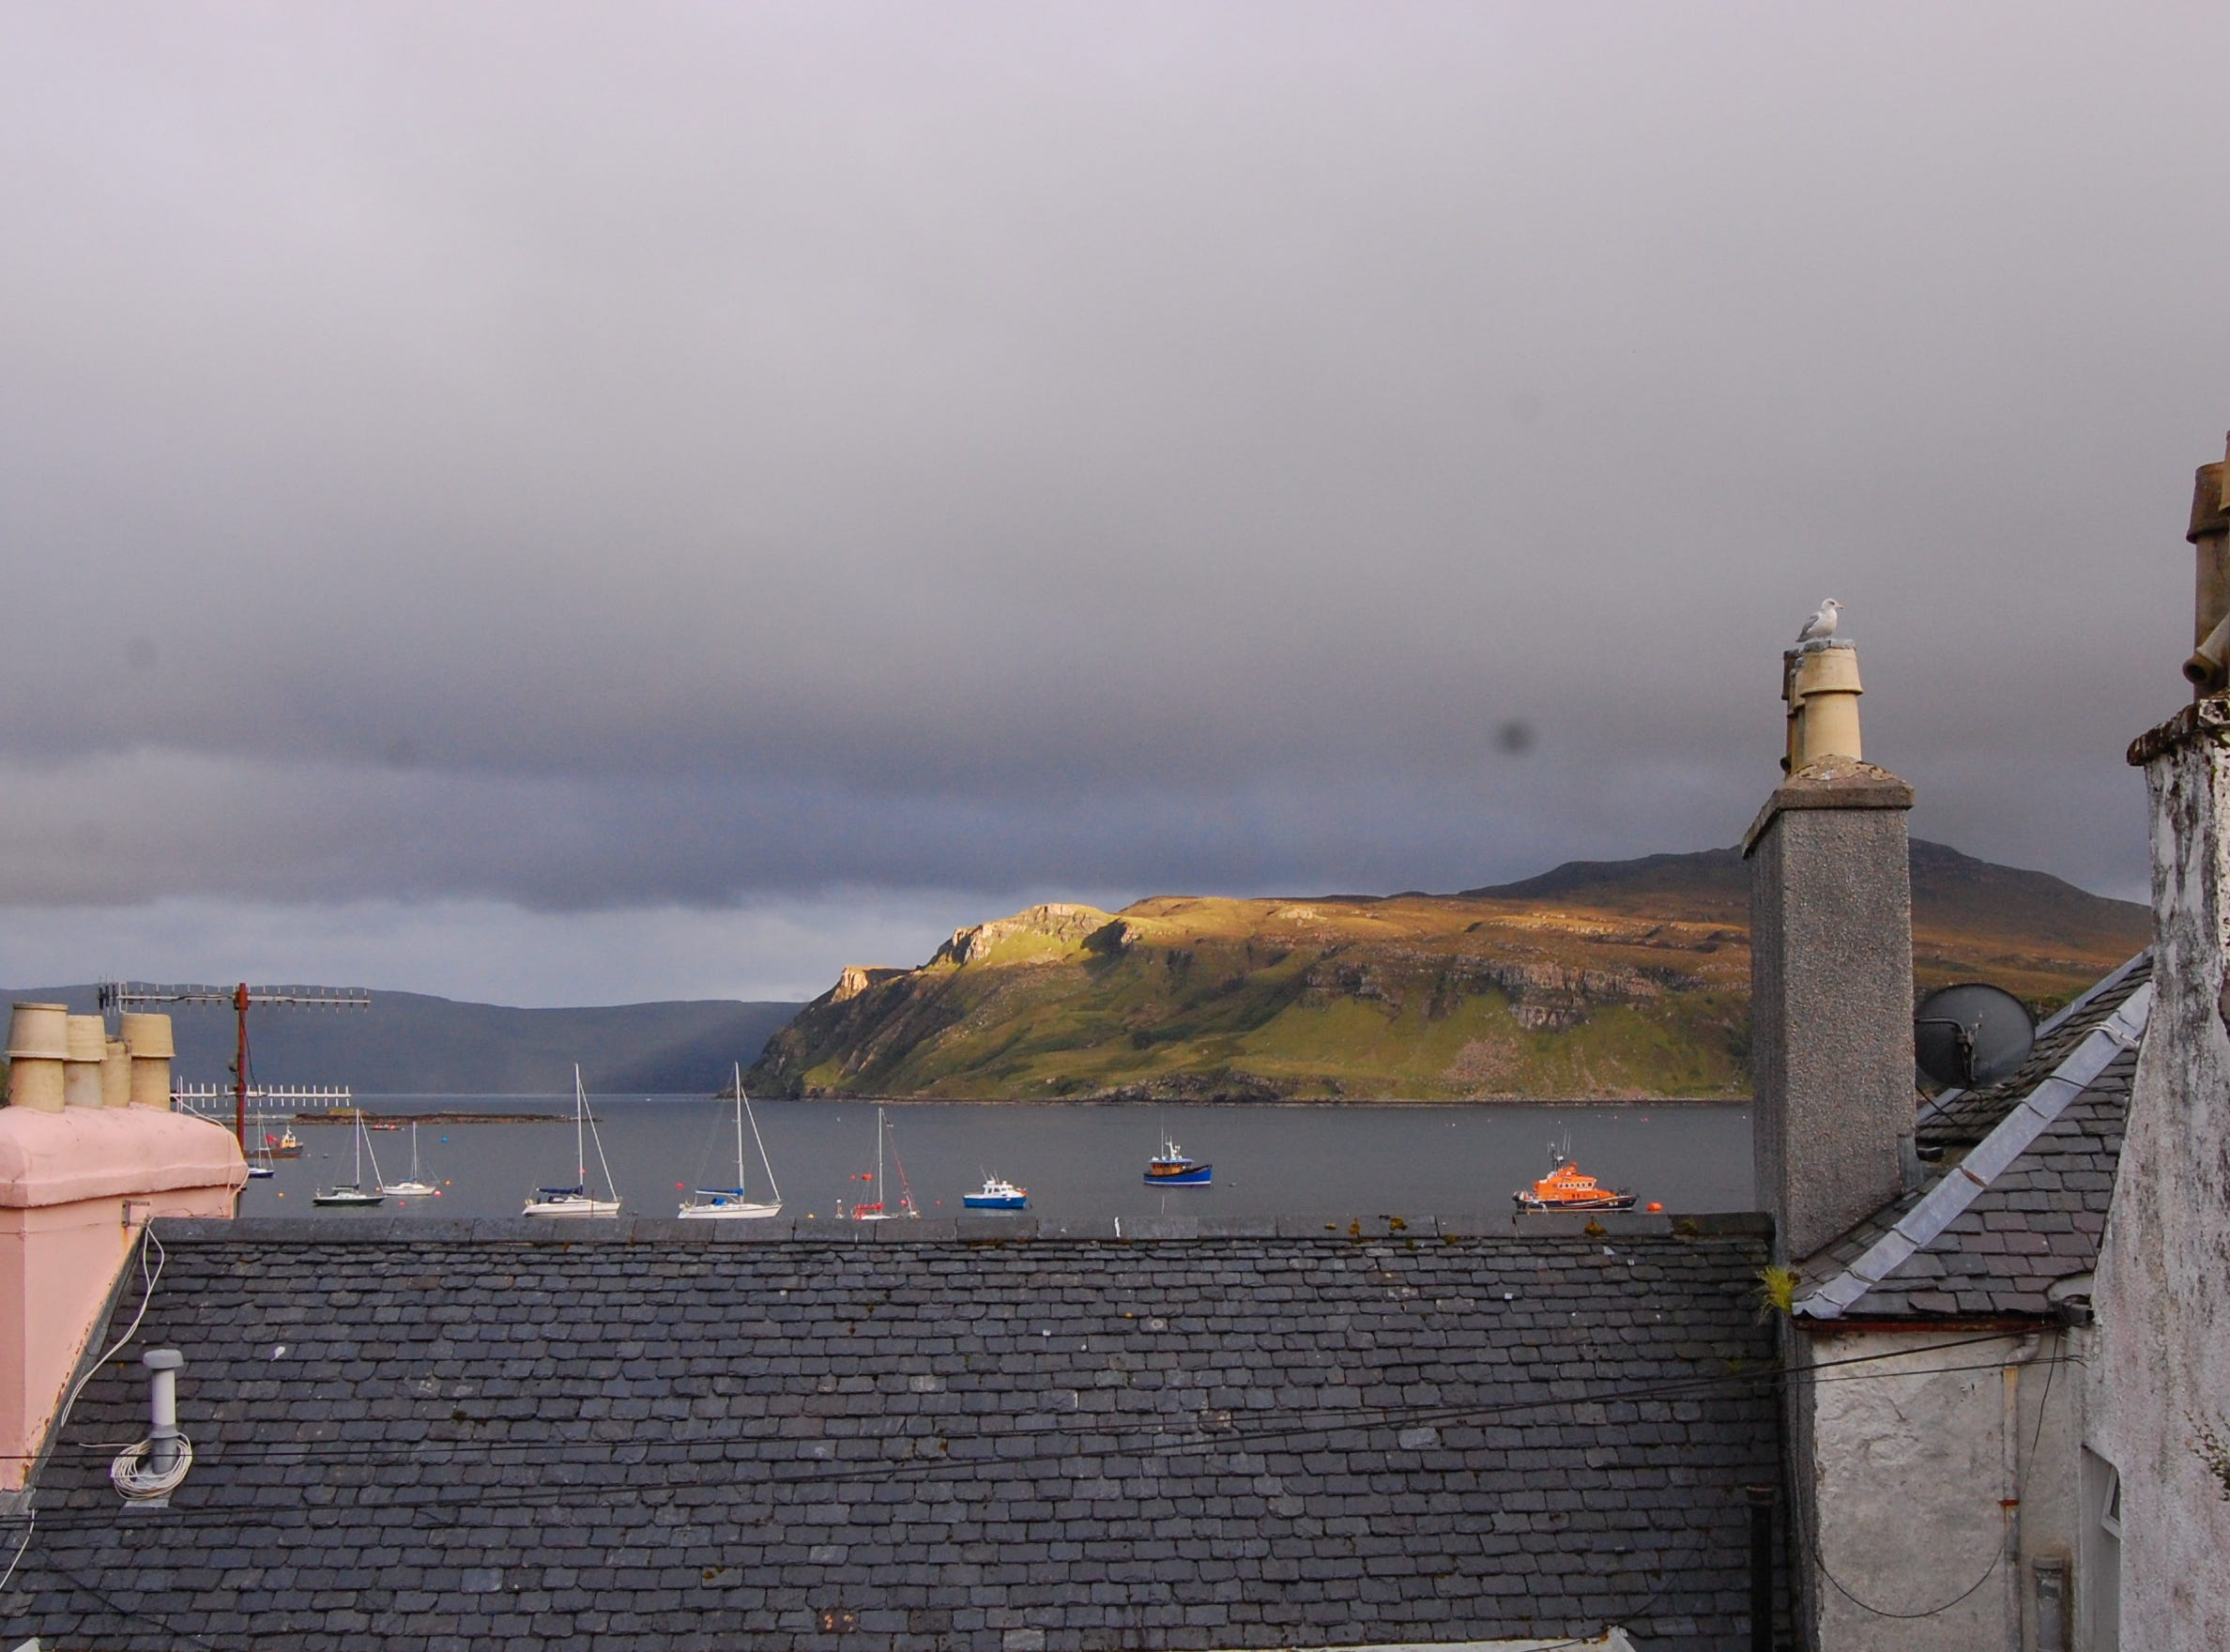 The tiny town of Portree boasts beautiful views, cozy eateries and pubs, where I spent my evenings reviving myself with plates of fish and chips and haggis after long days of hiking.